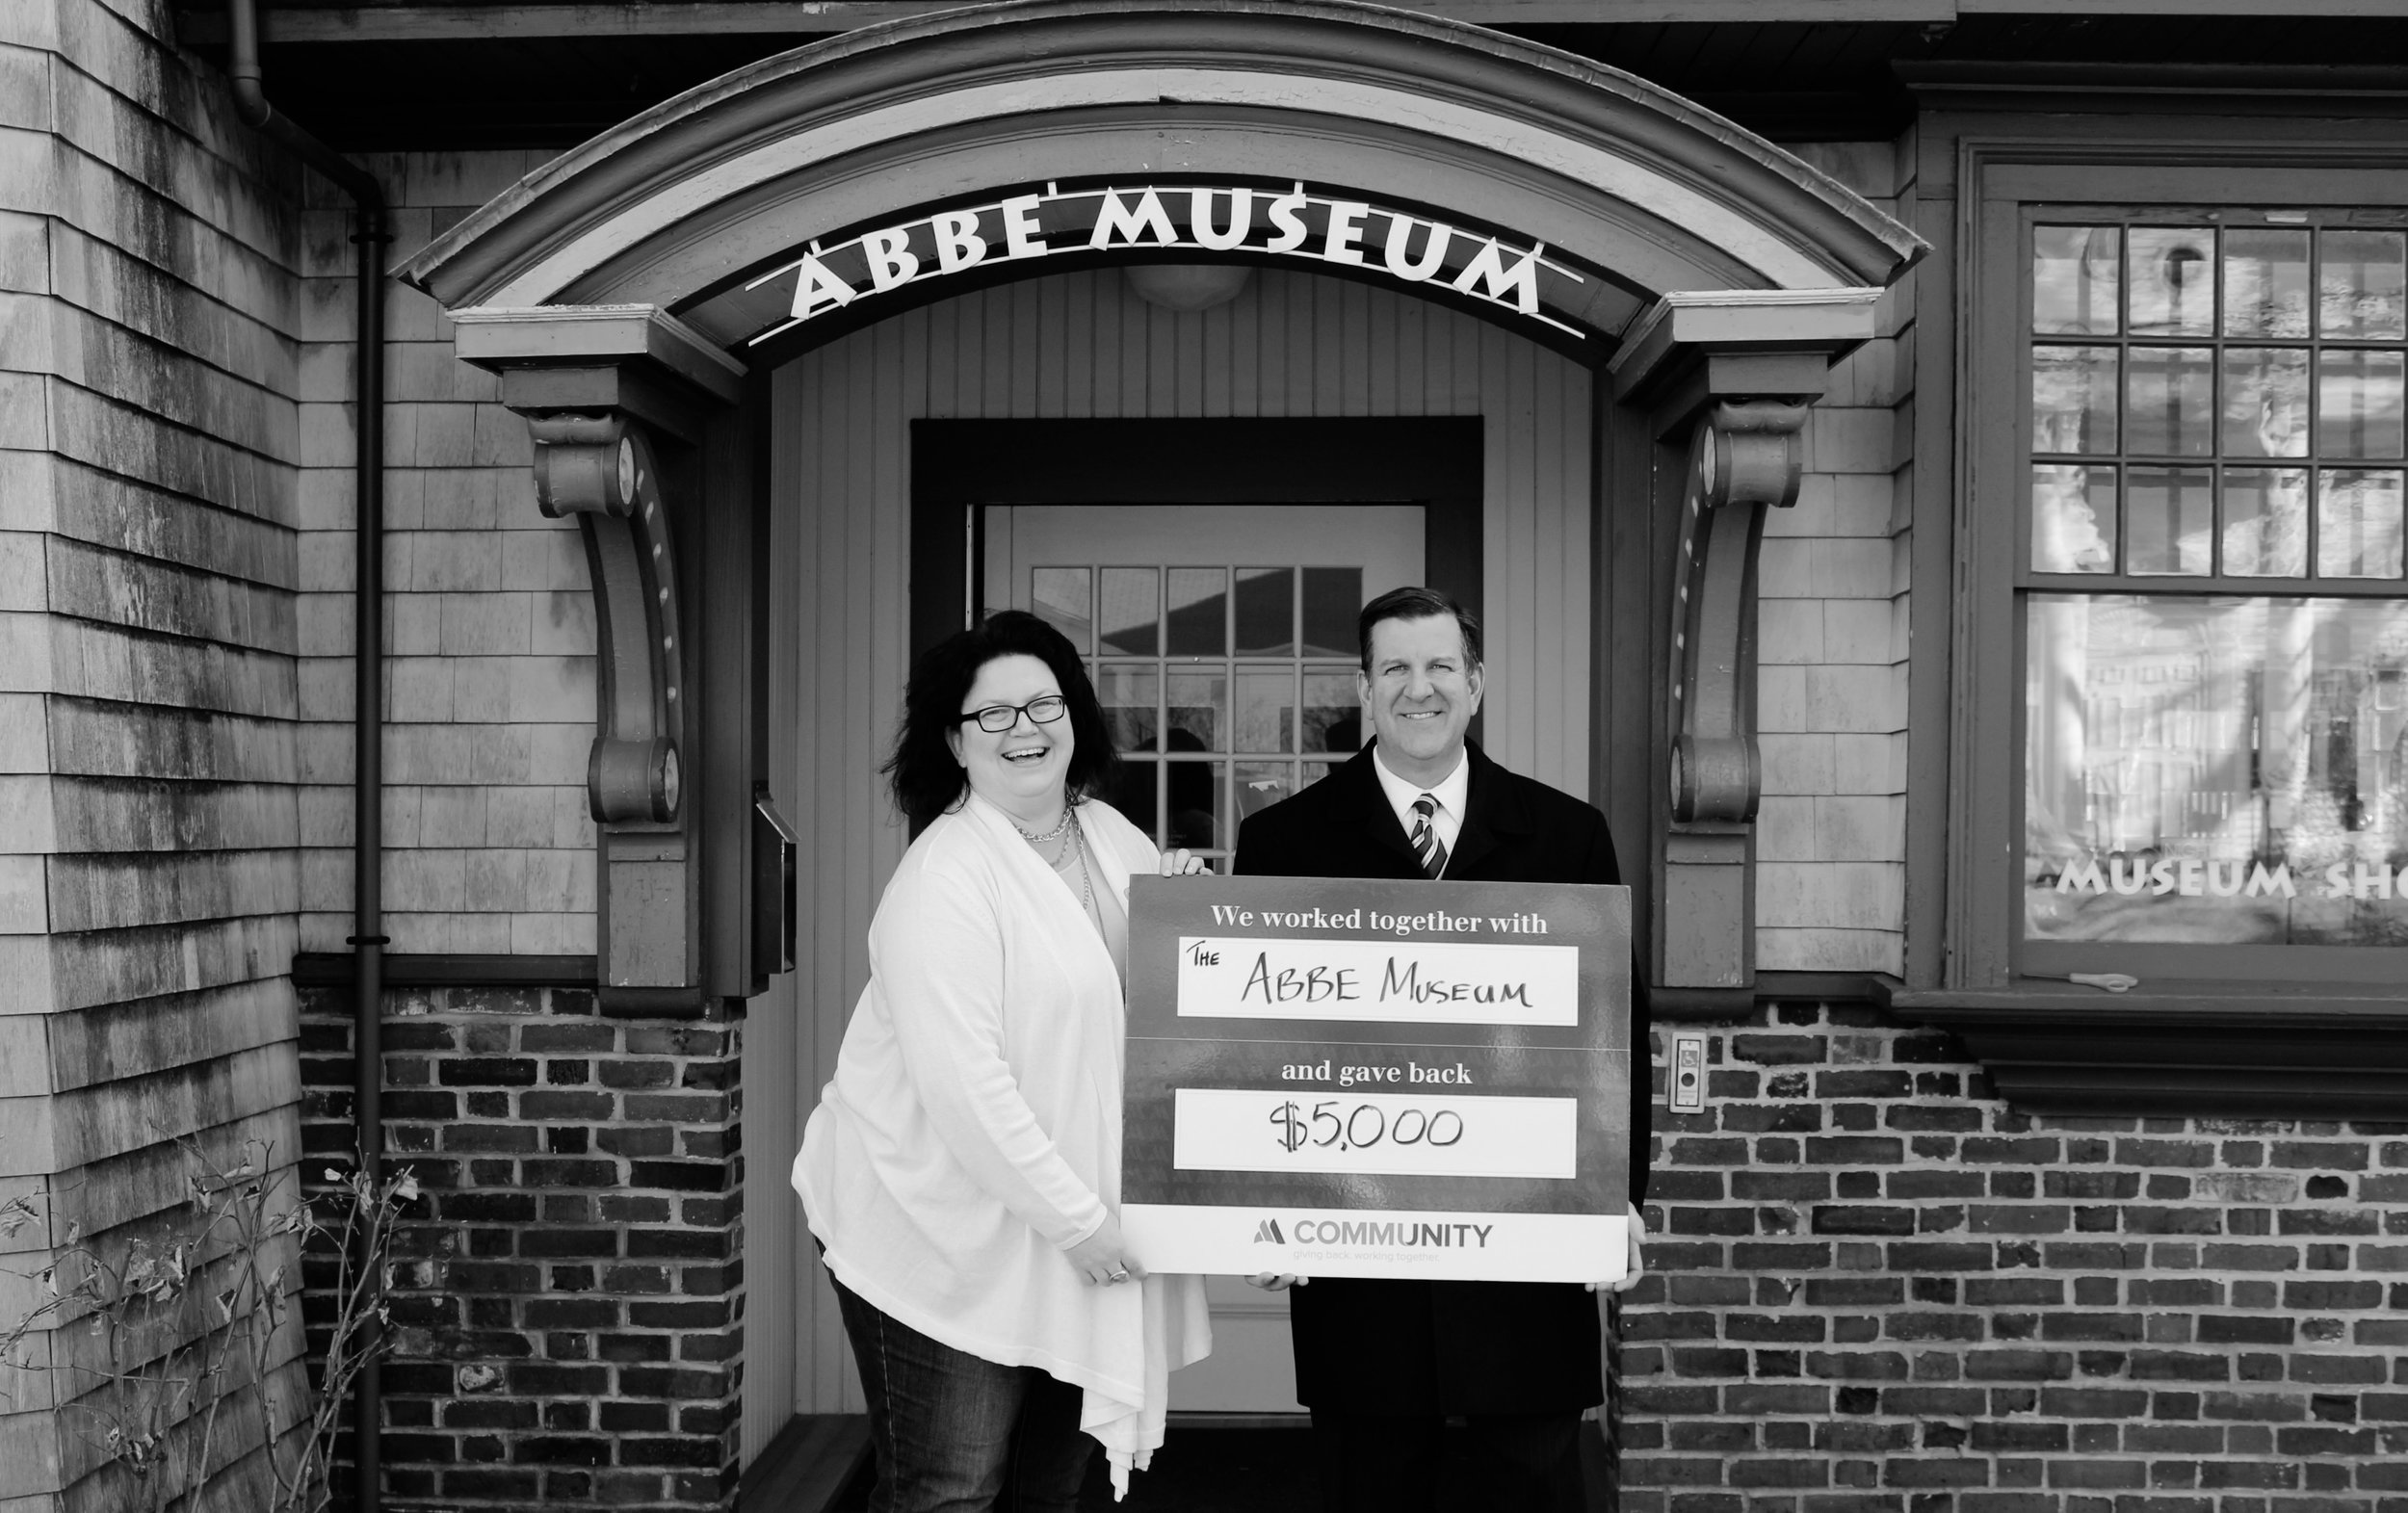 Abbe Museum President and CEO, Cinnamon Catlin-Legutko, and Branch Manager, Matt Horton.